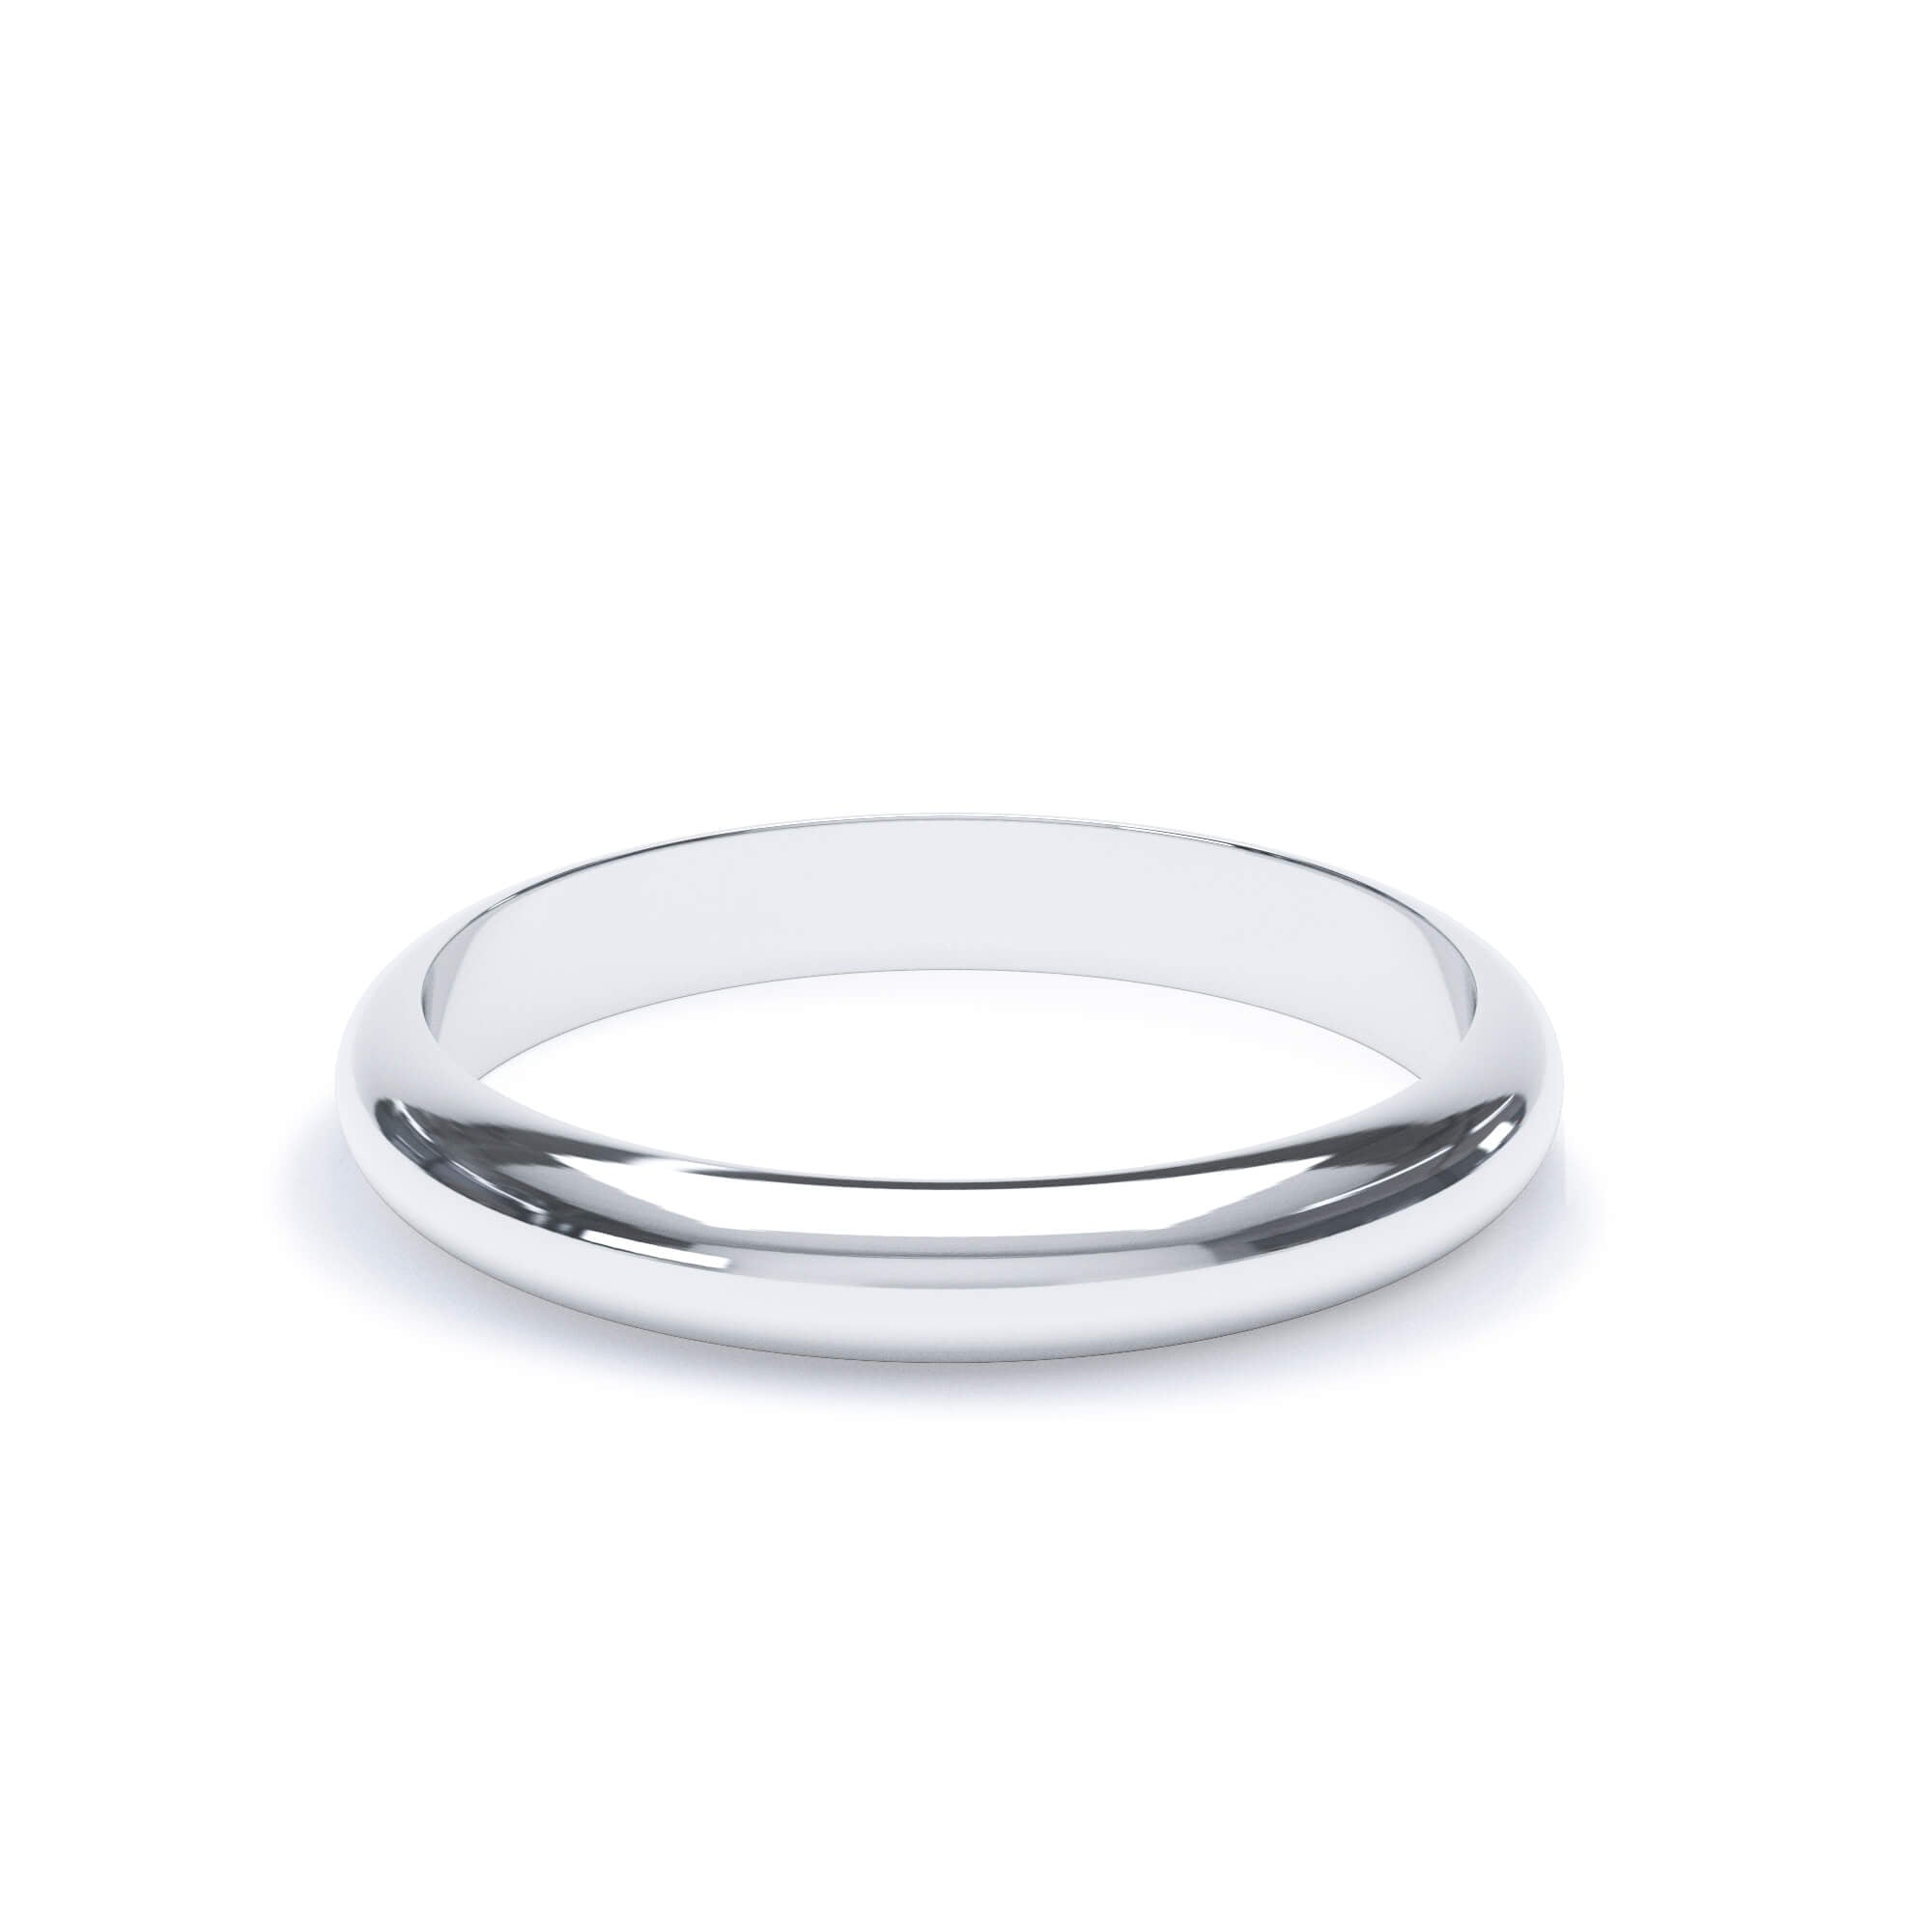 Women's Plain Wedding Band D Shape Profile Platinum Wedding Bands Lily Arkwright